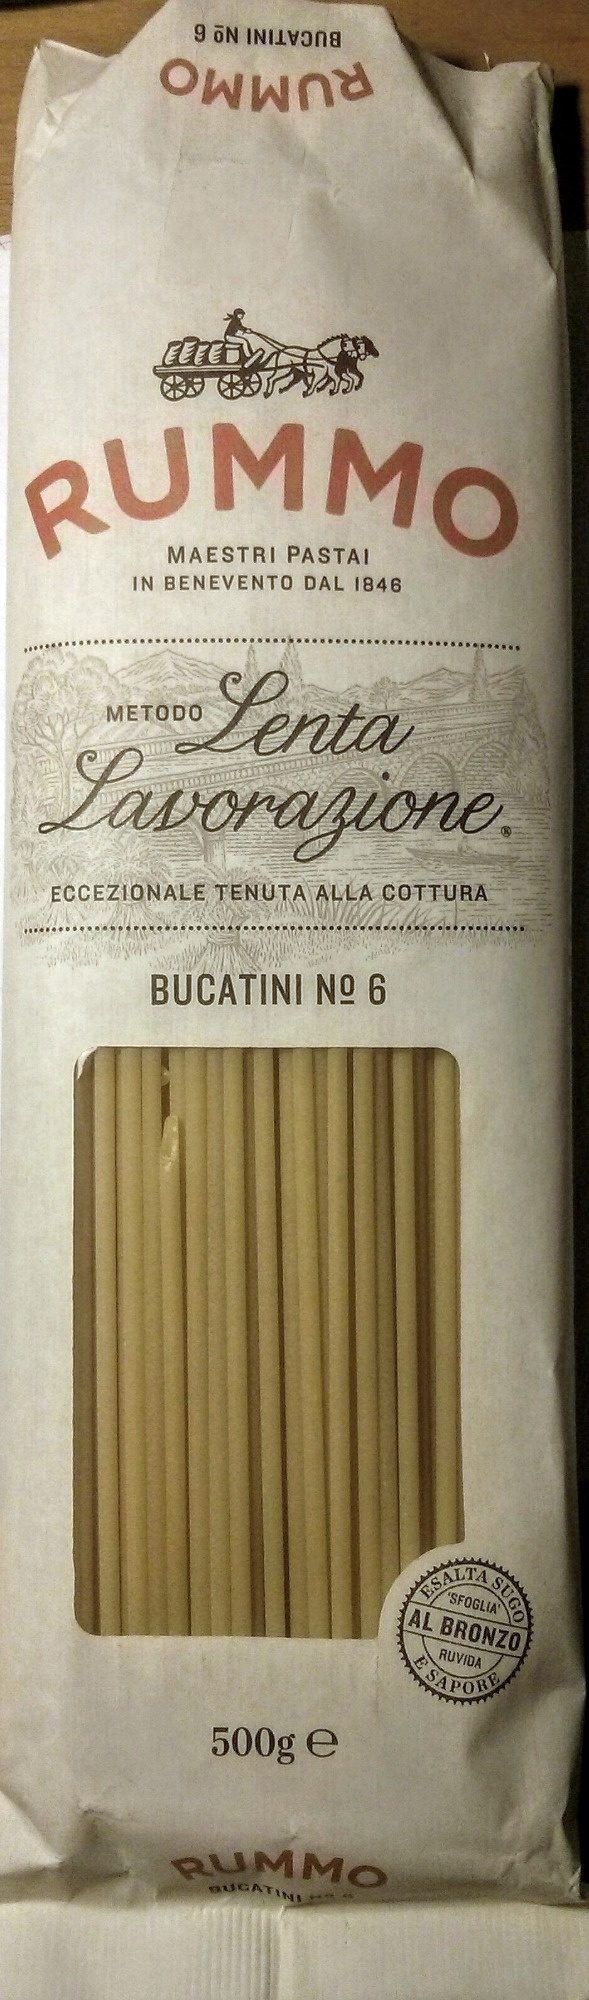 Bucatini N°6 - Rummo - 500 g - Product - fr